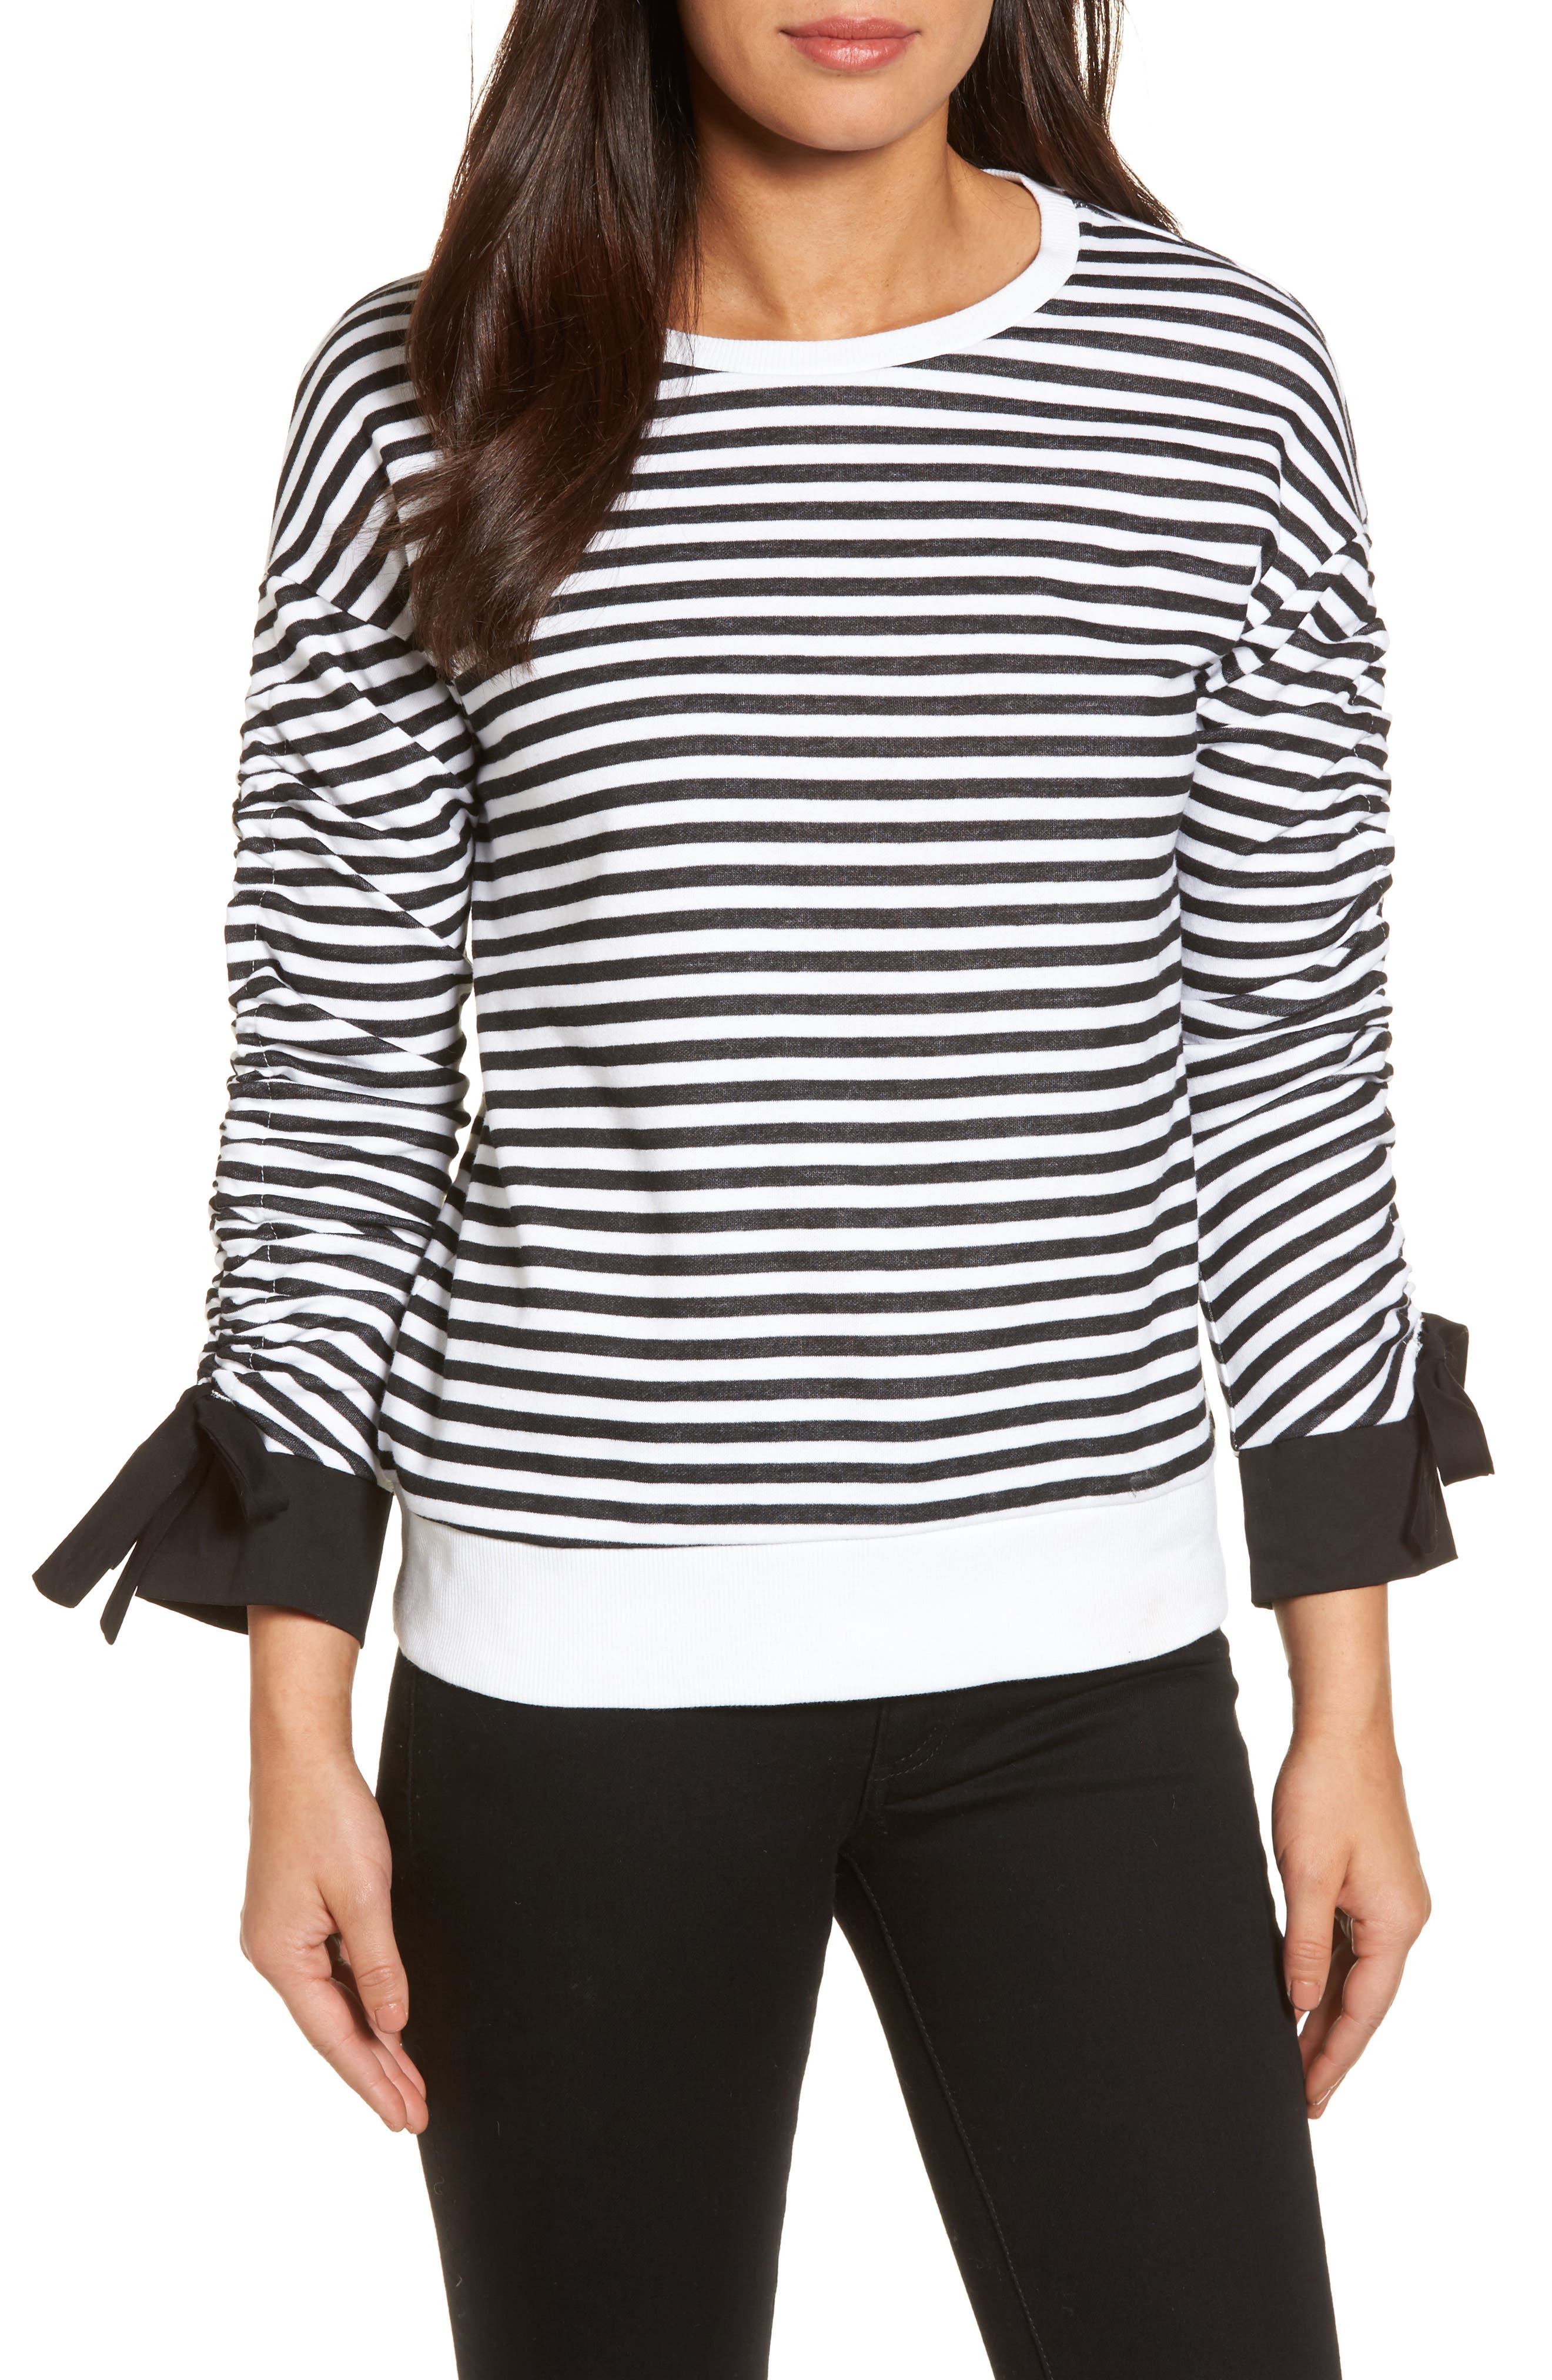 Ruched Sleeve Poplin Trim Sweatshirt,                             Main thumbnail 1, color,                             Black- White Stripe